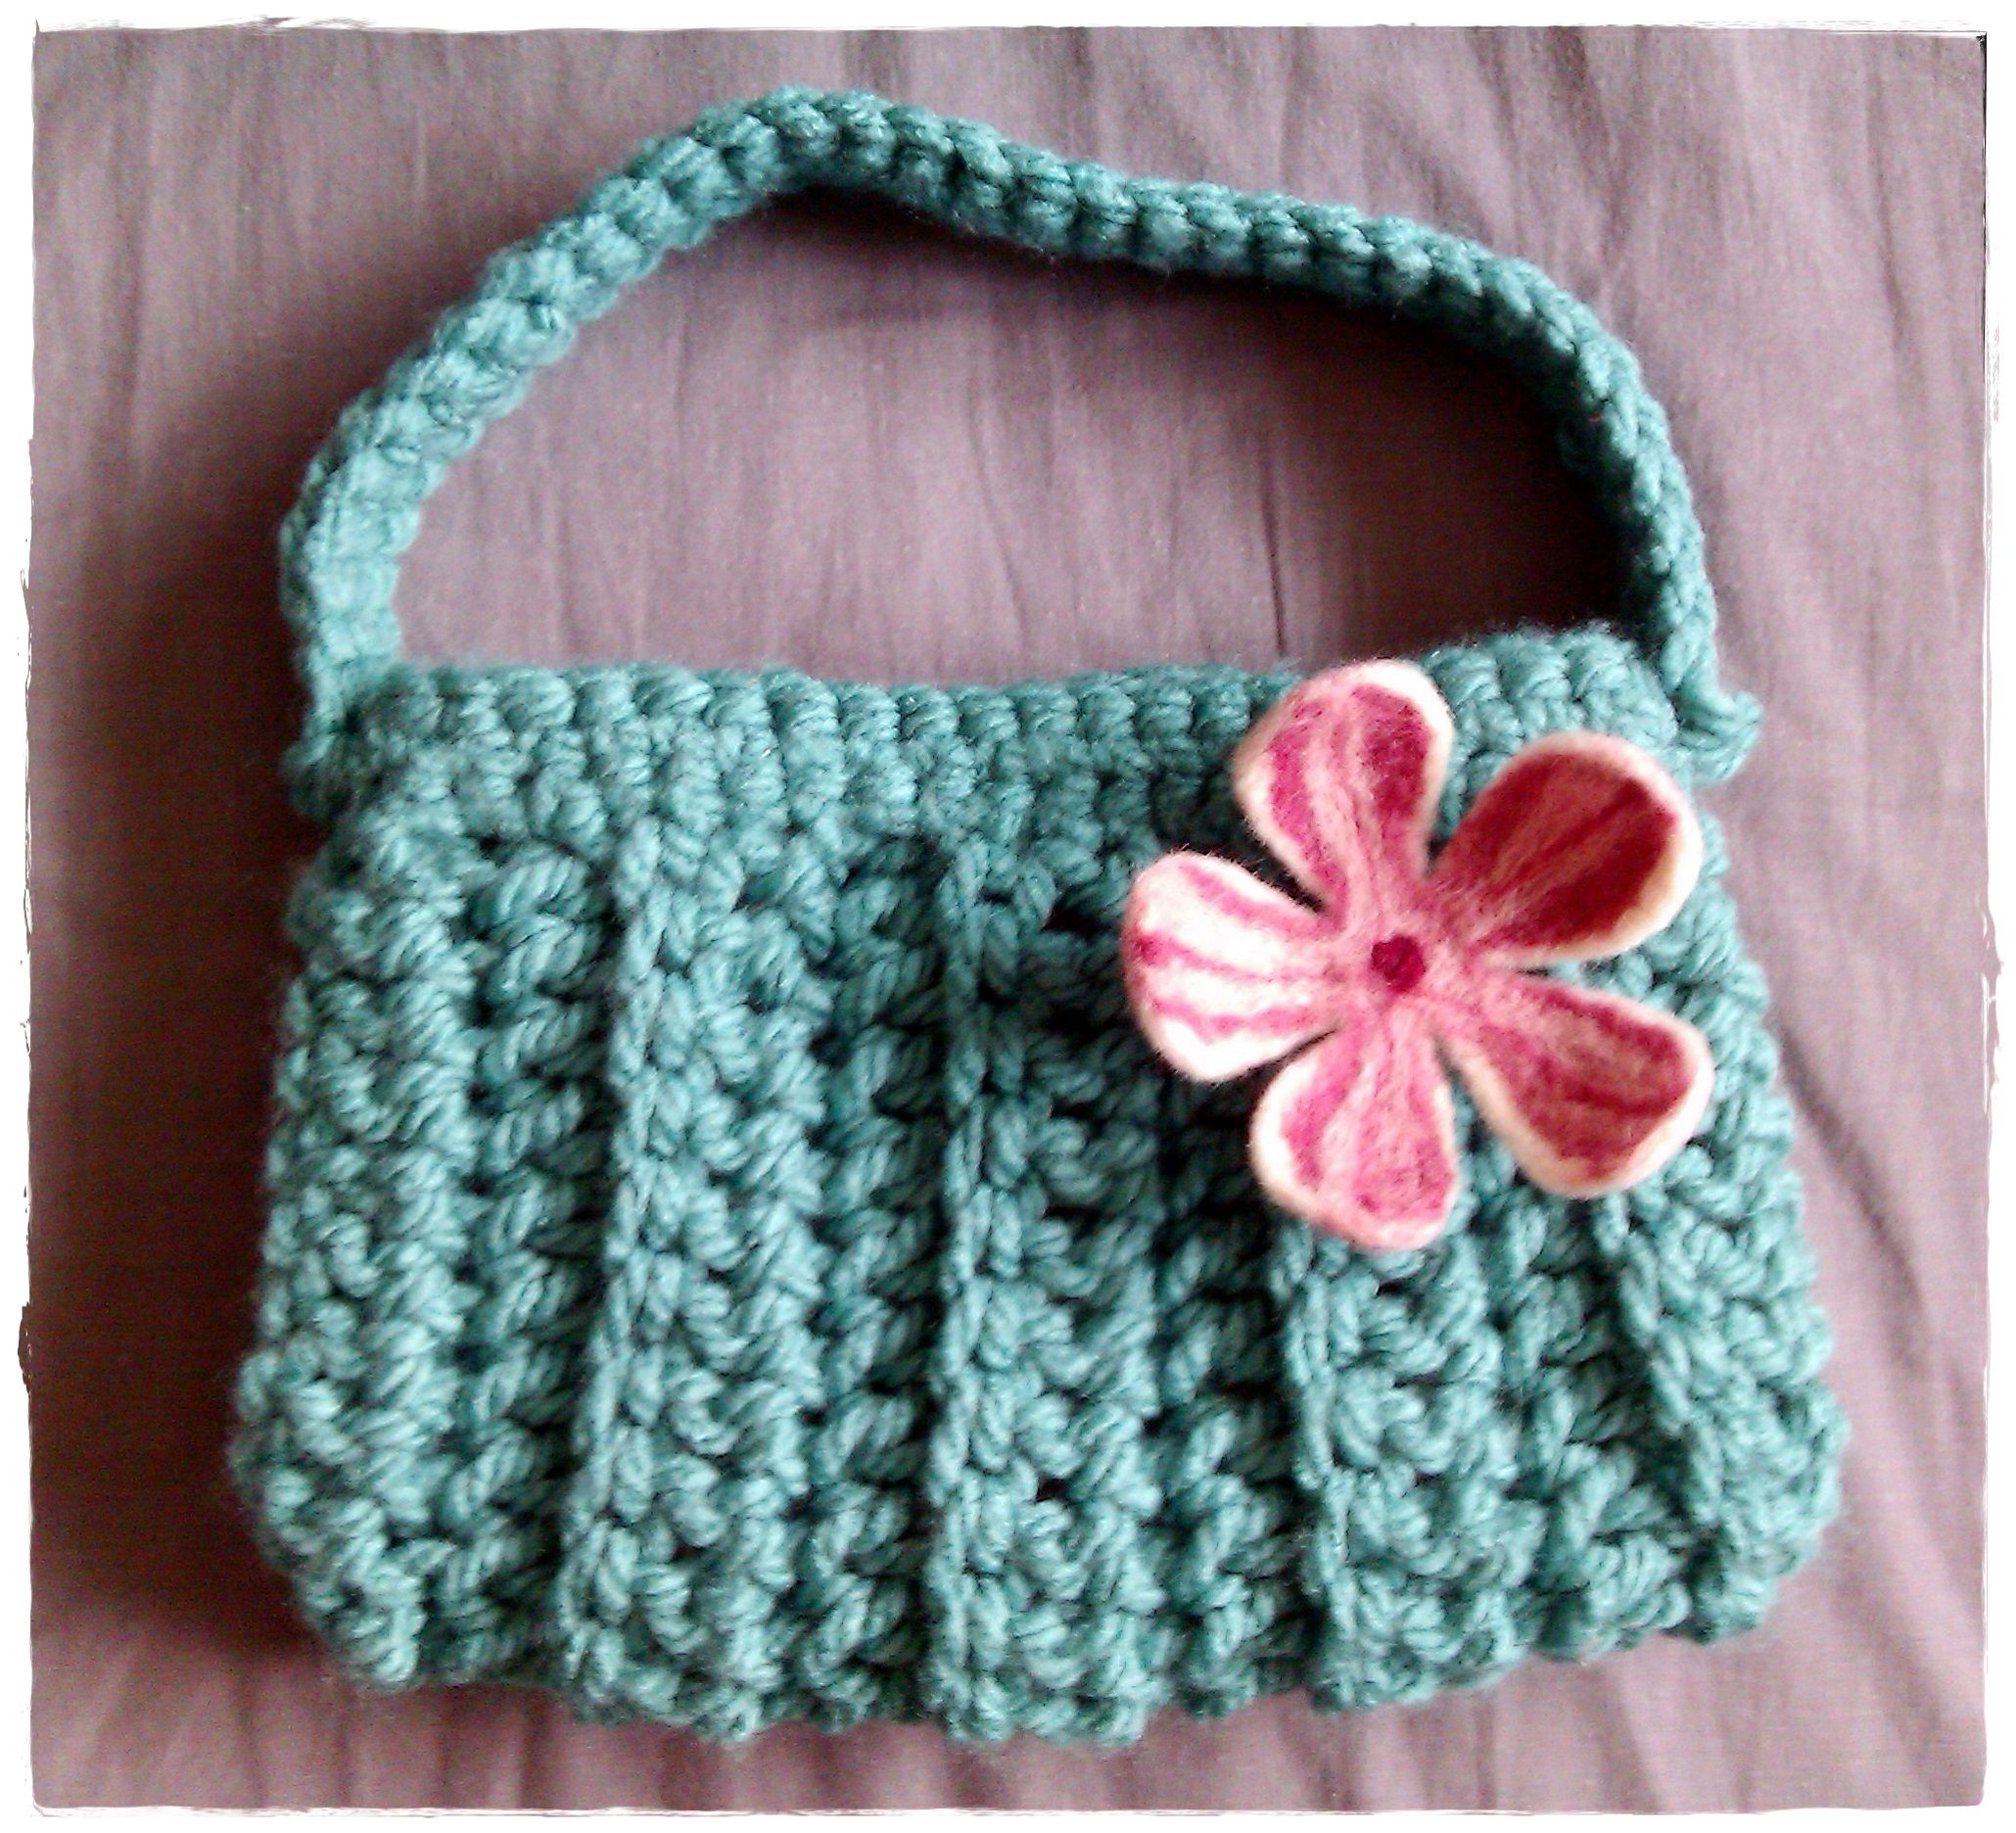 Crochet Bag with Needle felted flower Brooch.